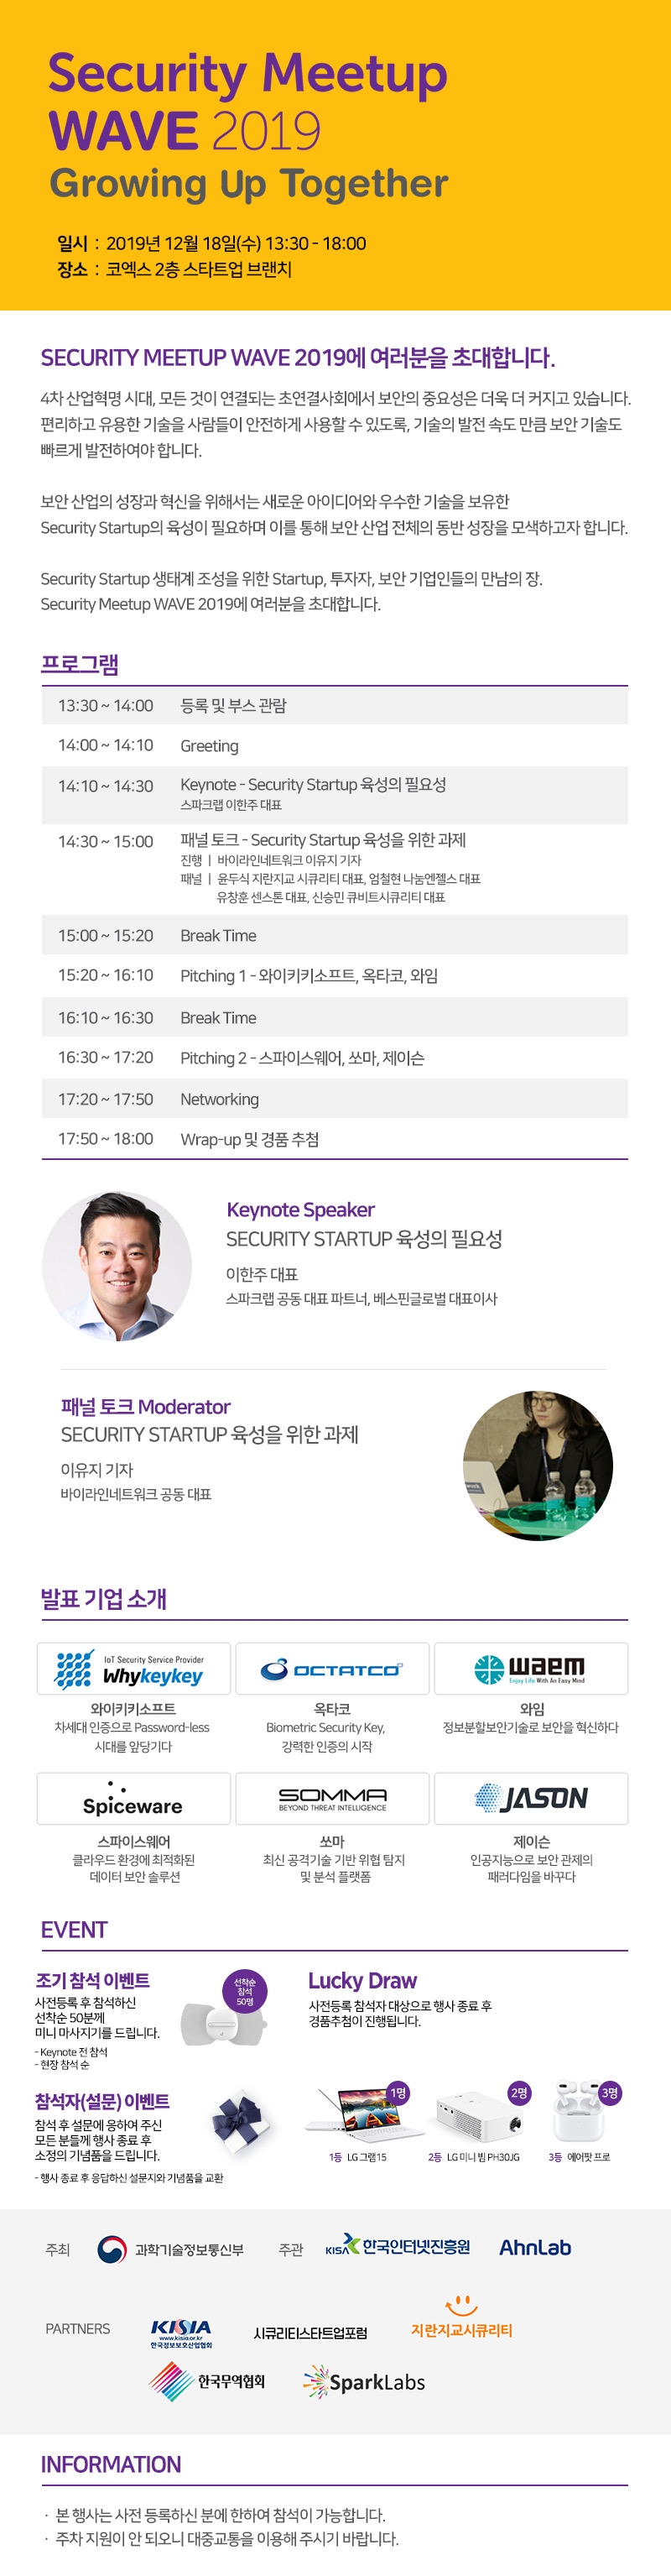 Security Meetup WAVE 2019 Growing Up Together 개최 (2019/12/18)